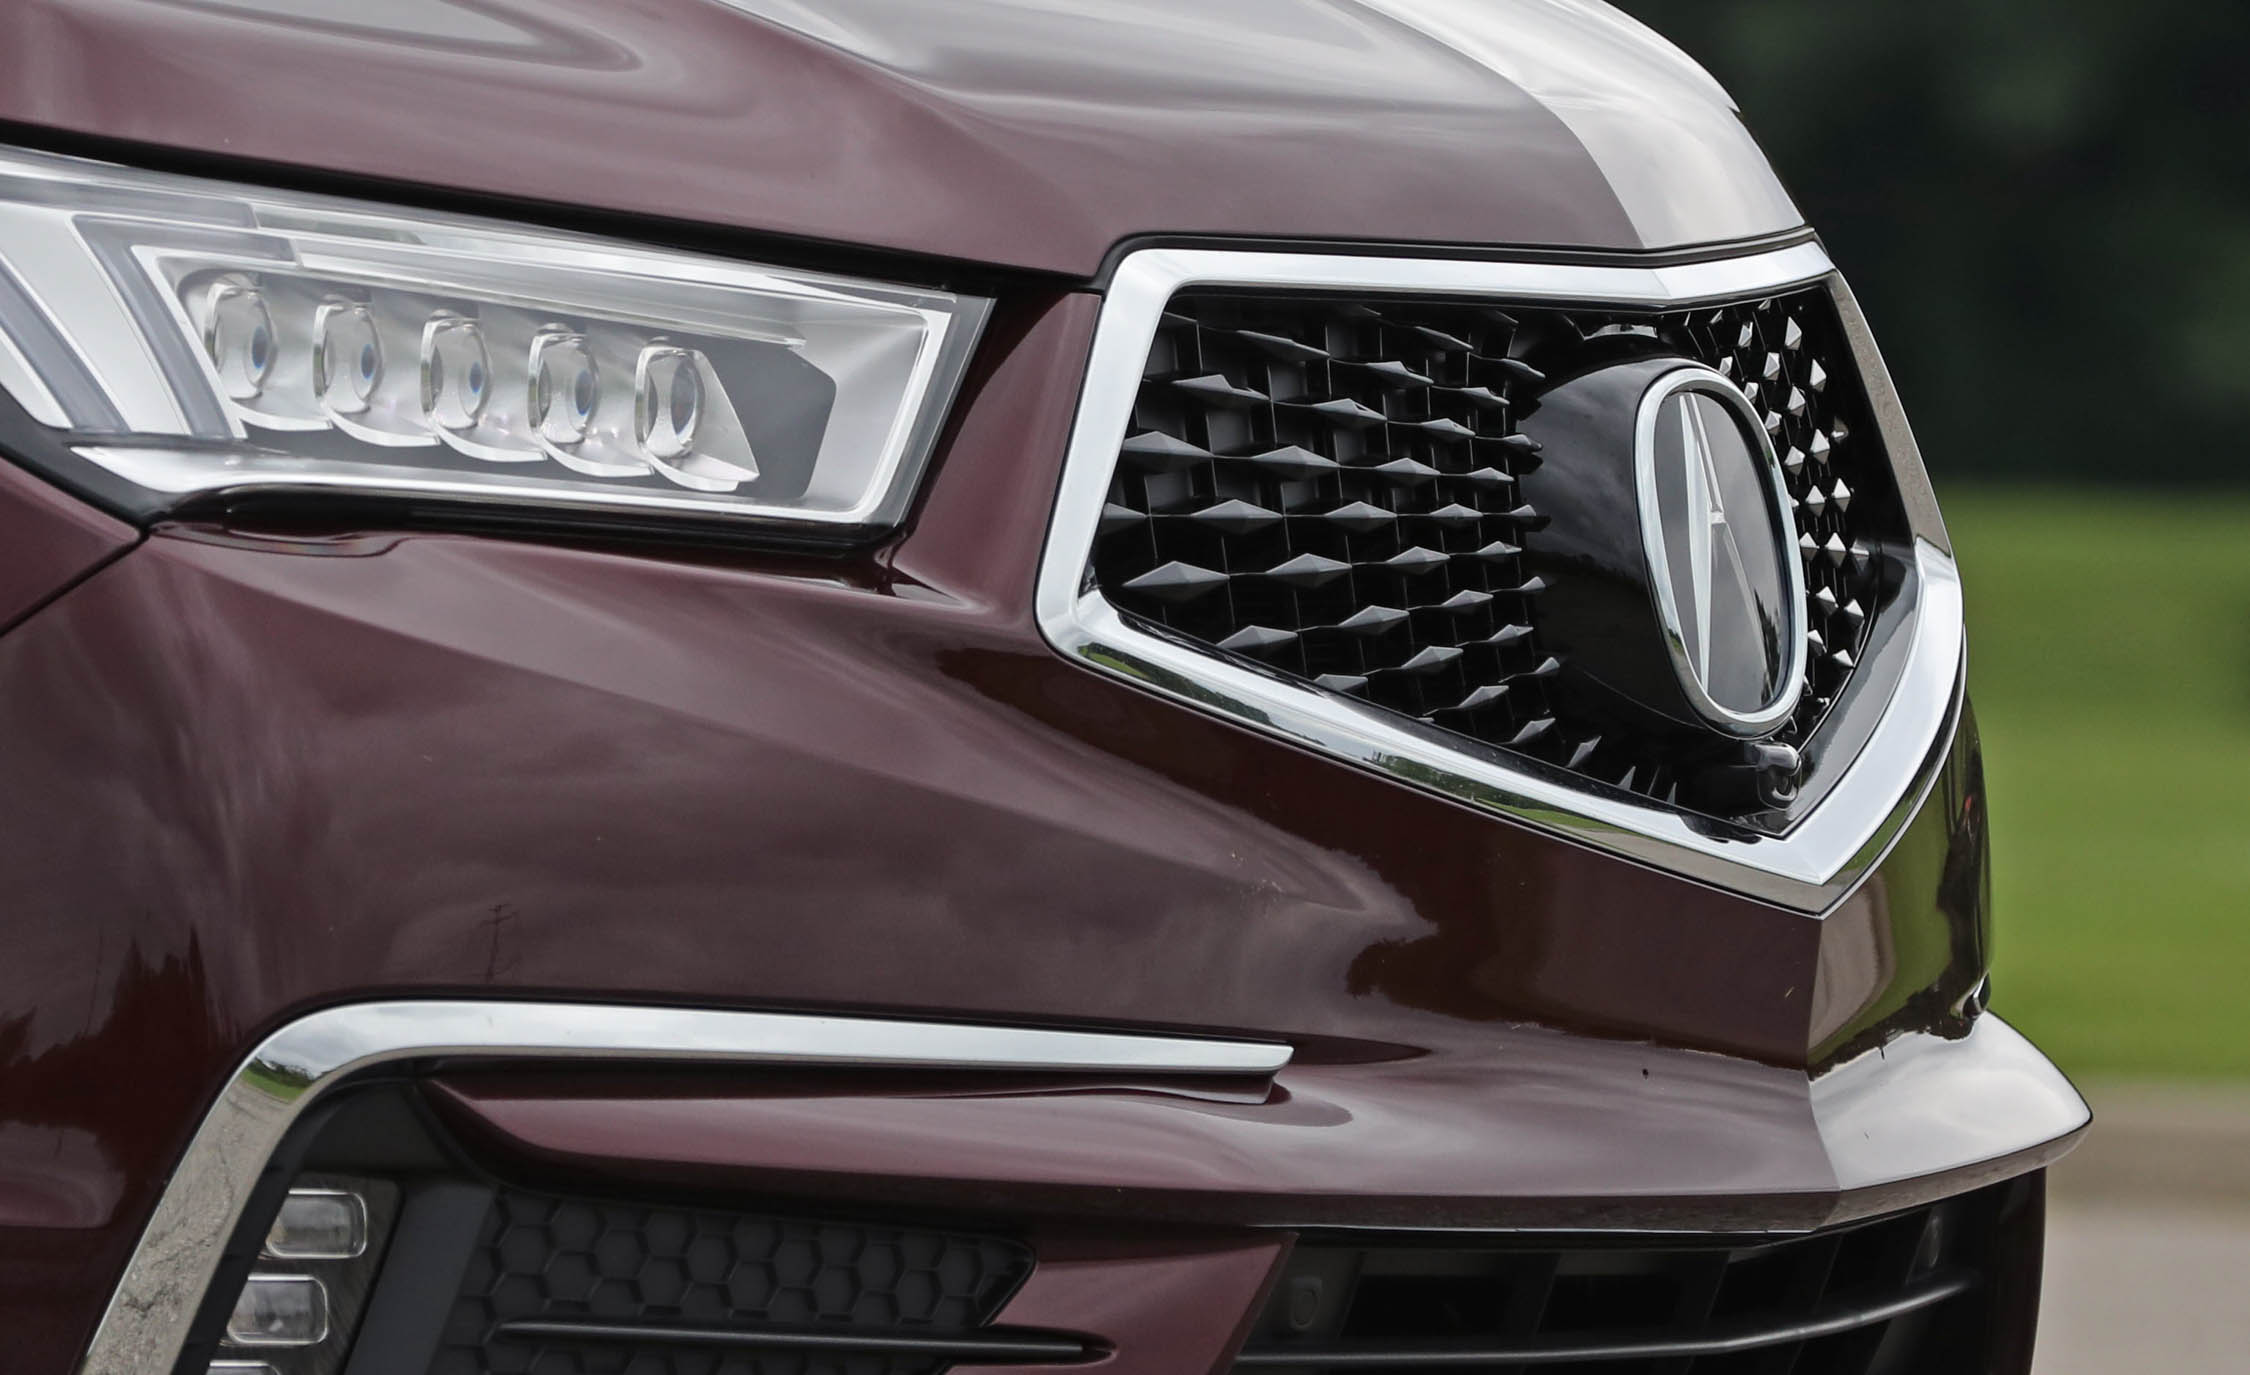 2017 Acura Mdx Exterior View Grille (Photo 20 of 22)